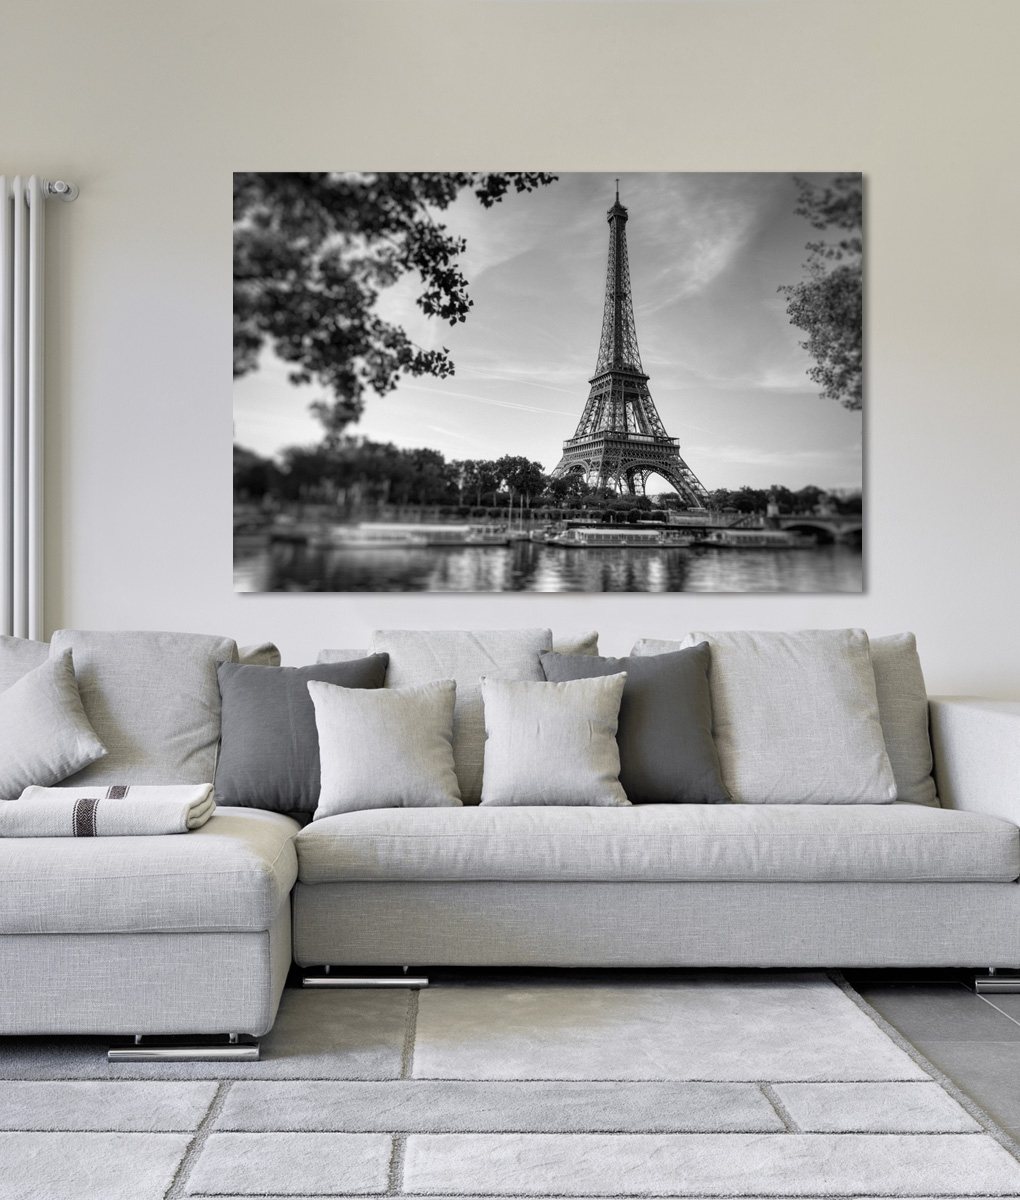 Paris Siene River Eiffel Tower Canvas Print | Framingland Pertaining To Current Eiffel Tower Canvas Wall Art (View 12 of 15)